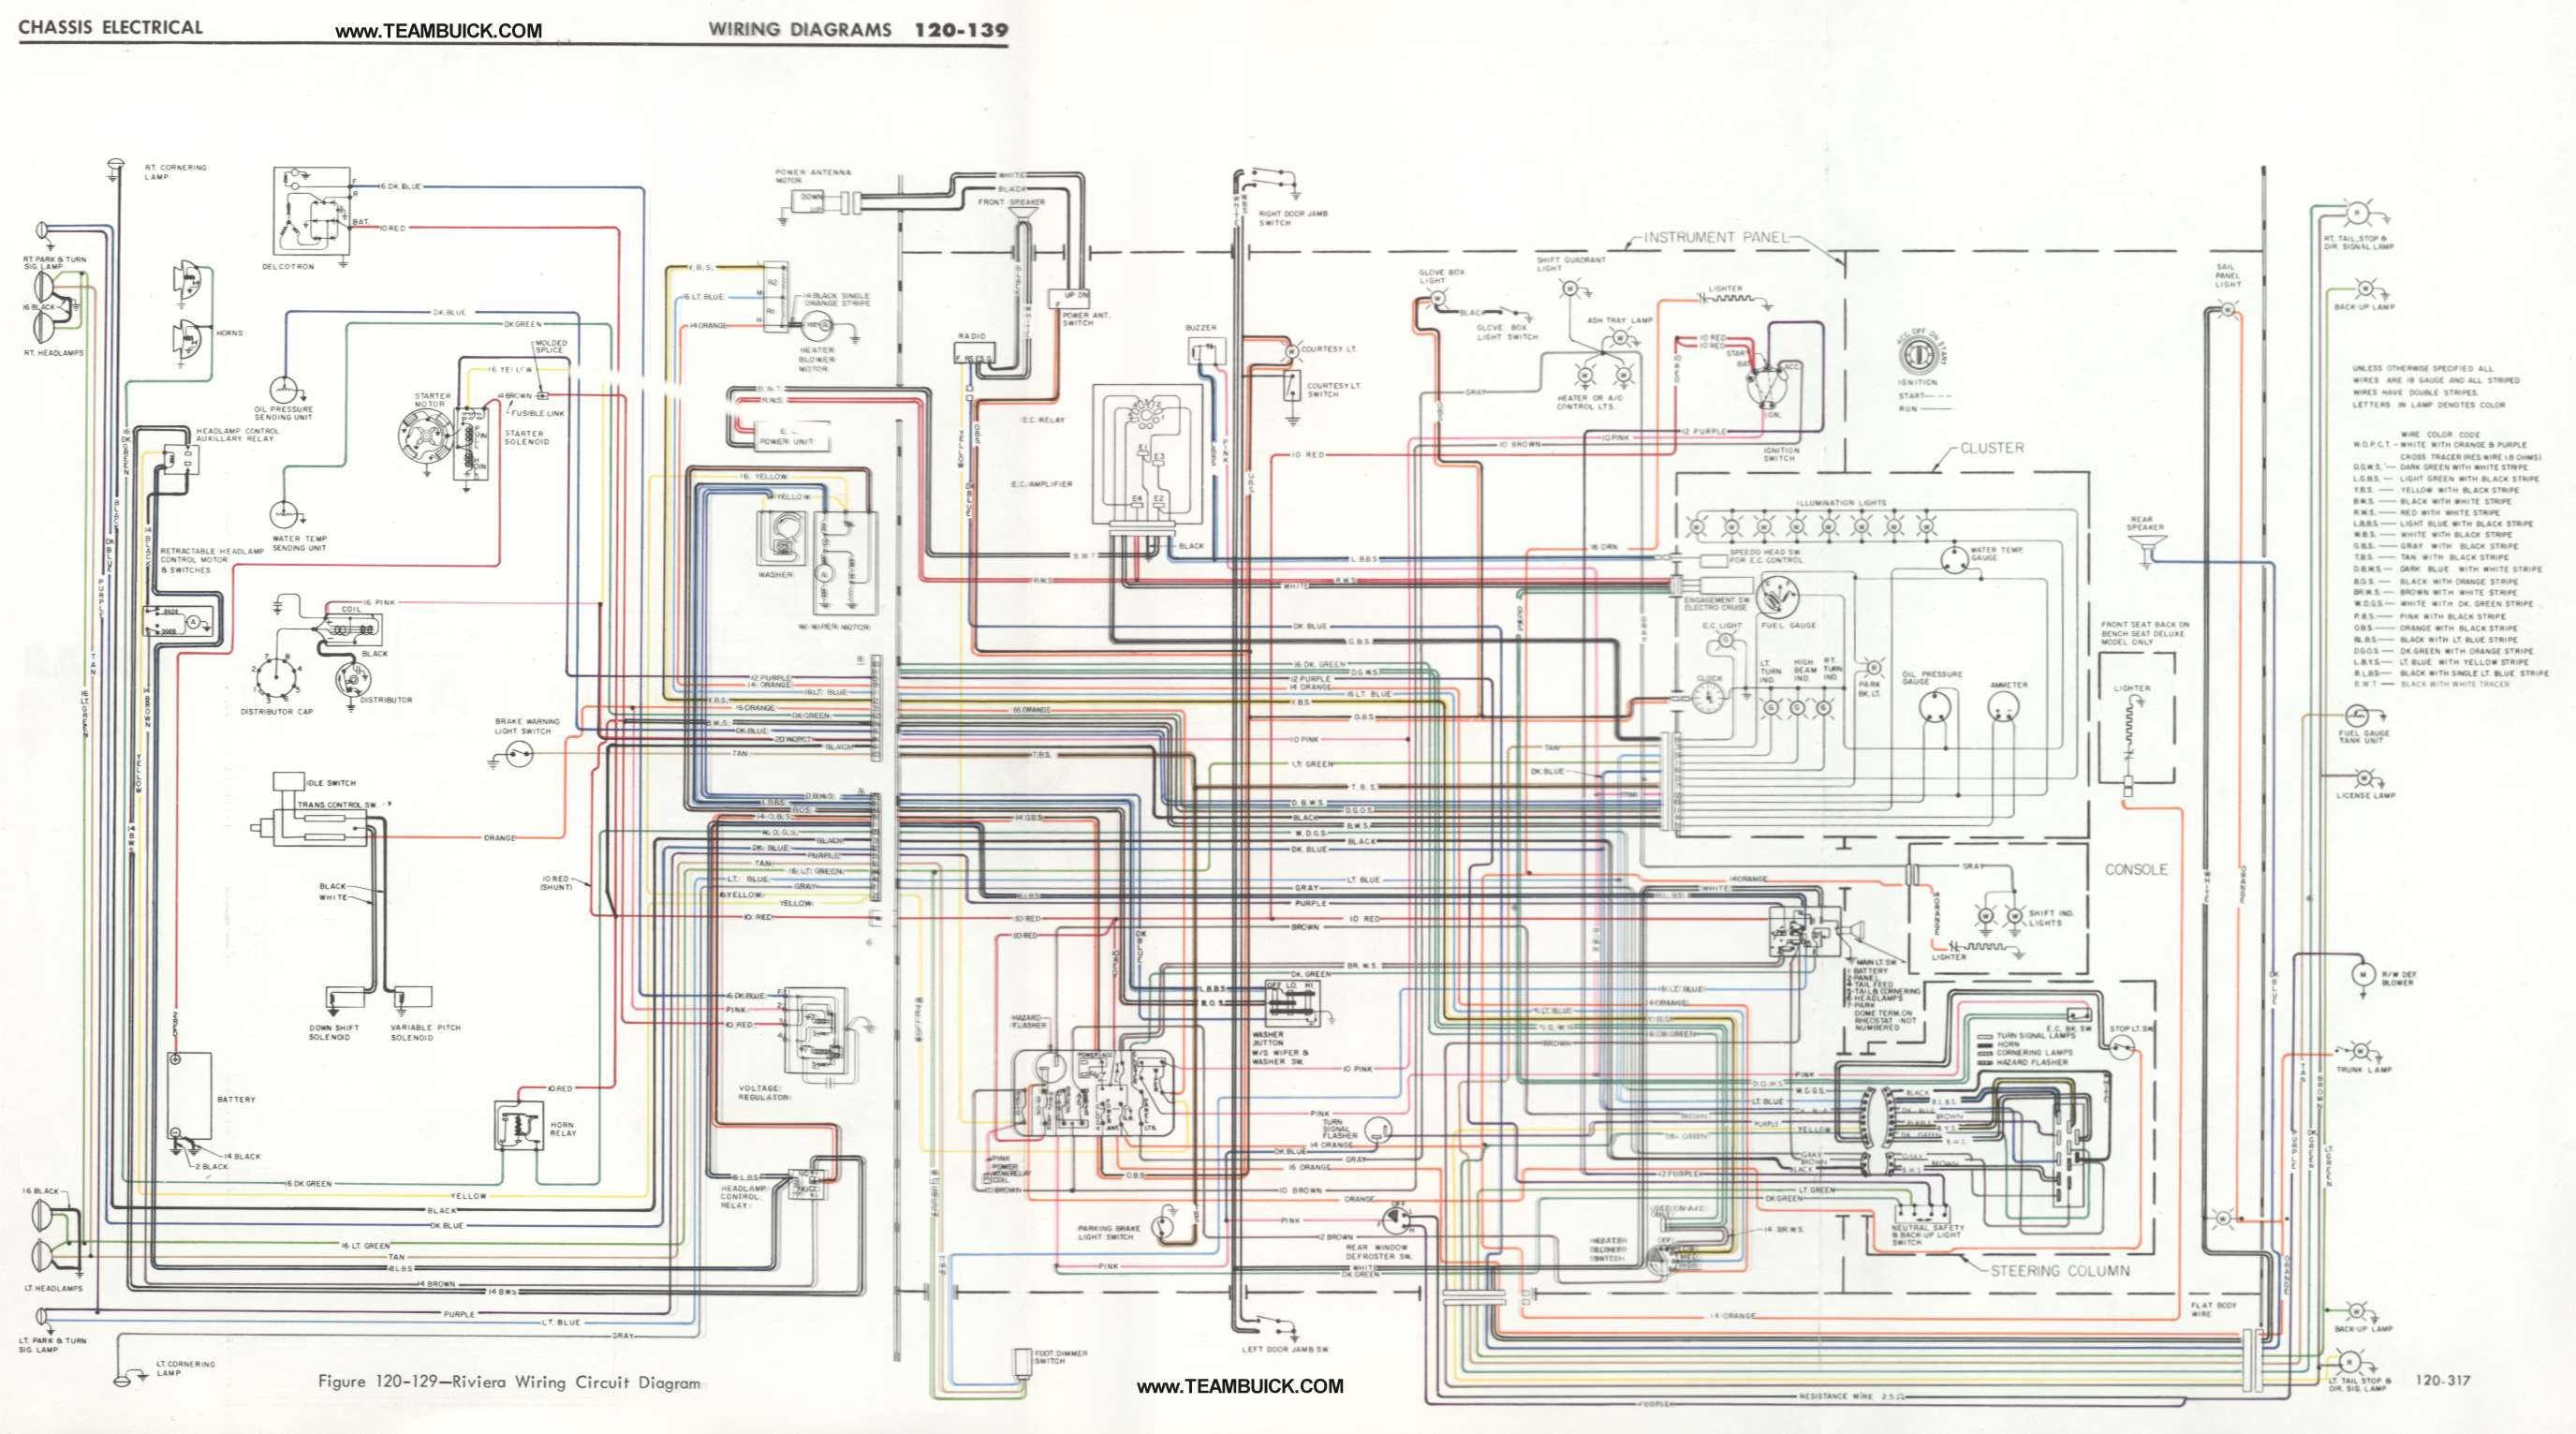 mercedes sl500 wiring diagram of ceiling fan with capacitor fuse best library 1972 buick riviera third level rh 19 20 jacobwinterstein com 98